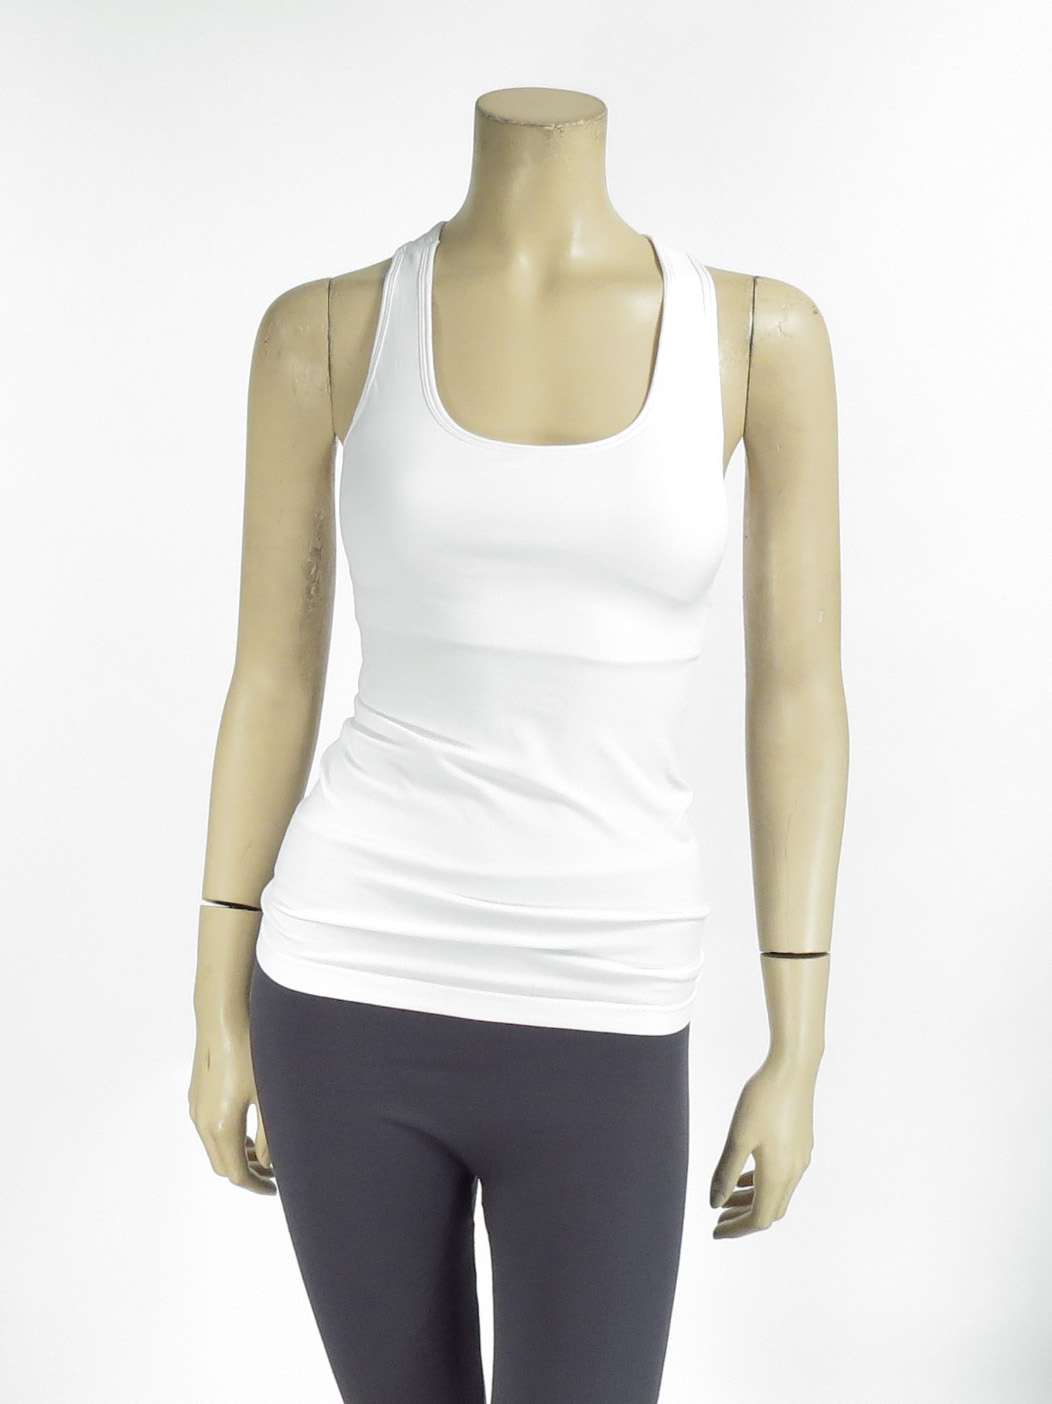 Padded Racerback Tank Top Built In Shelf Bra Free Size